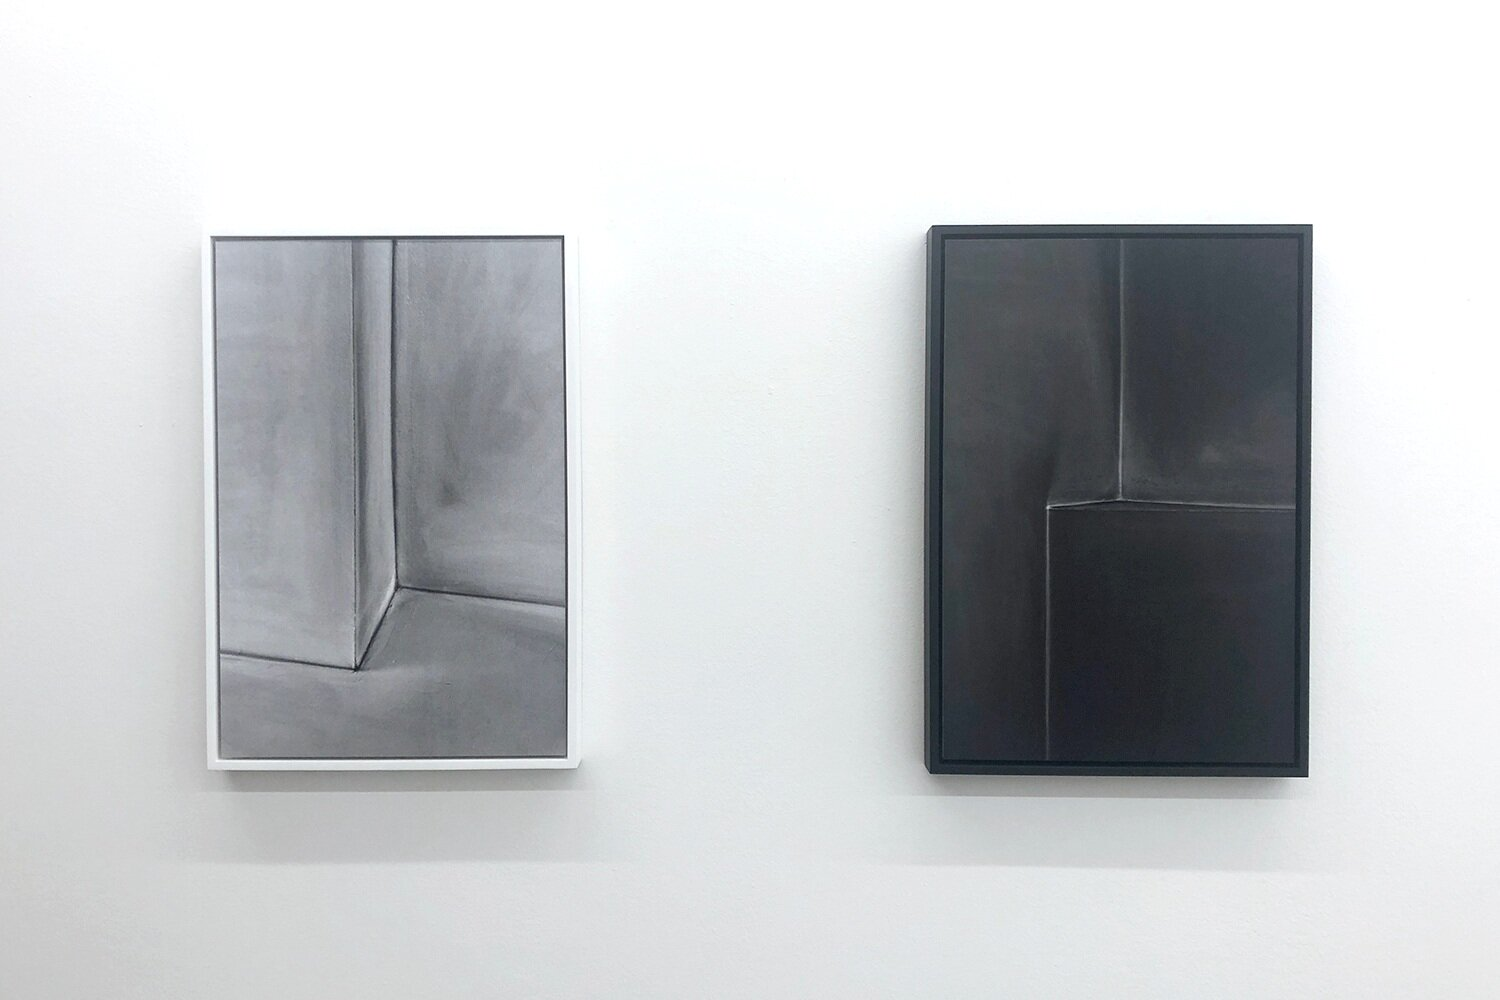 (Living) room, light and dark charcoal drawing, at Galerie Caroline O'Breen